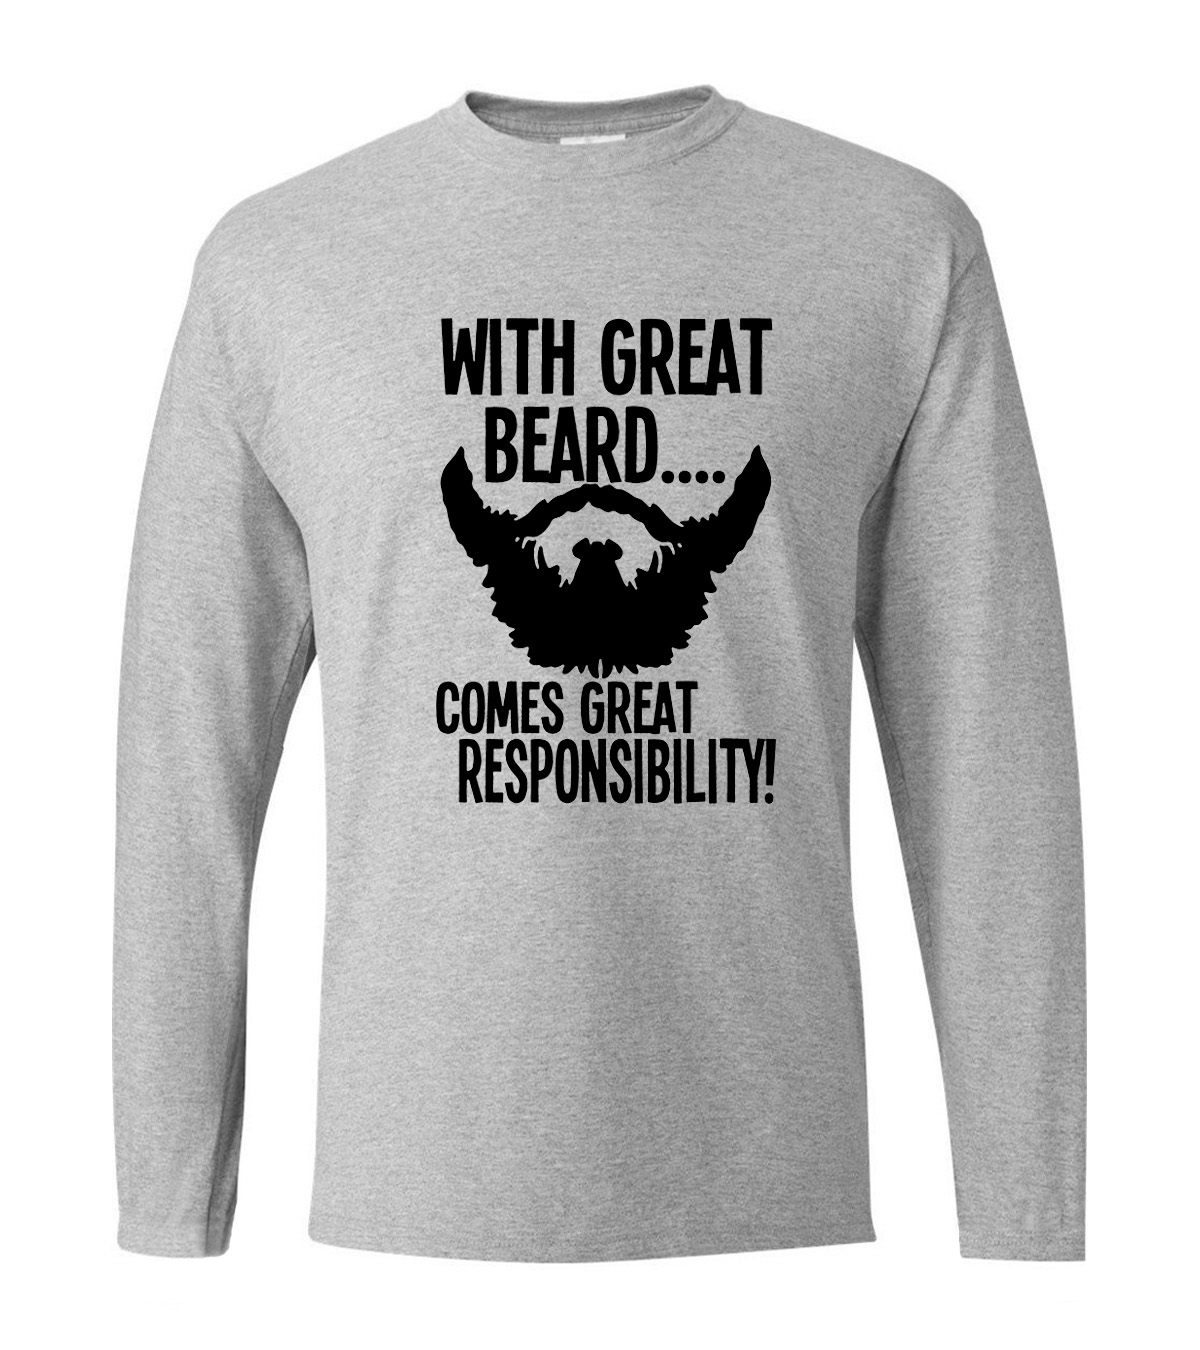 With Great Beard Comes Great Responsibility Men T Shirt 2019 new spring men's long sleeve T-shirts hip hop fitness man top tees